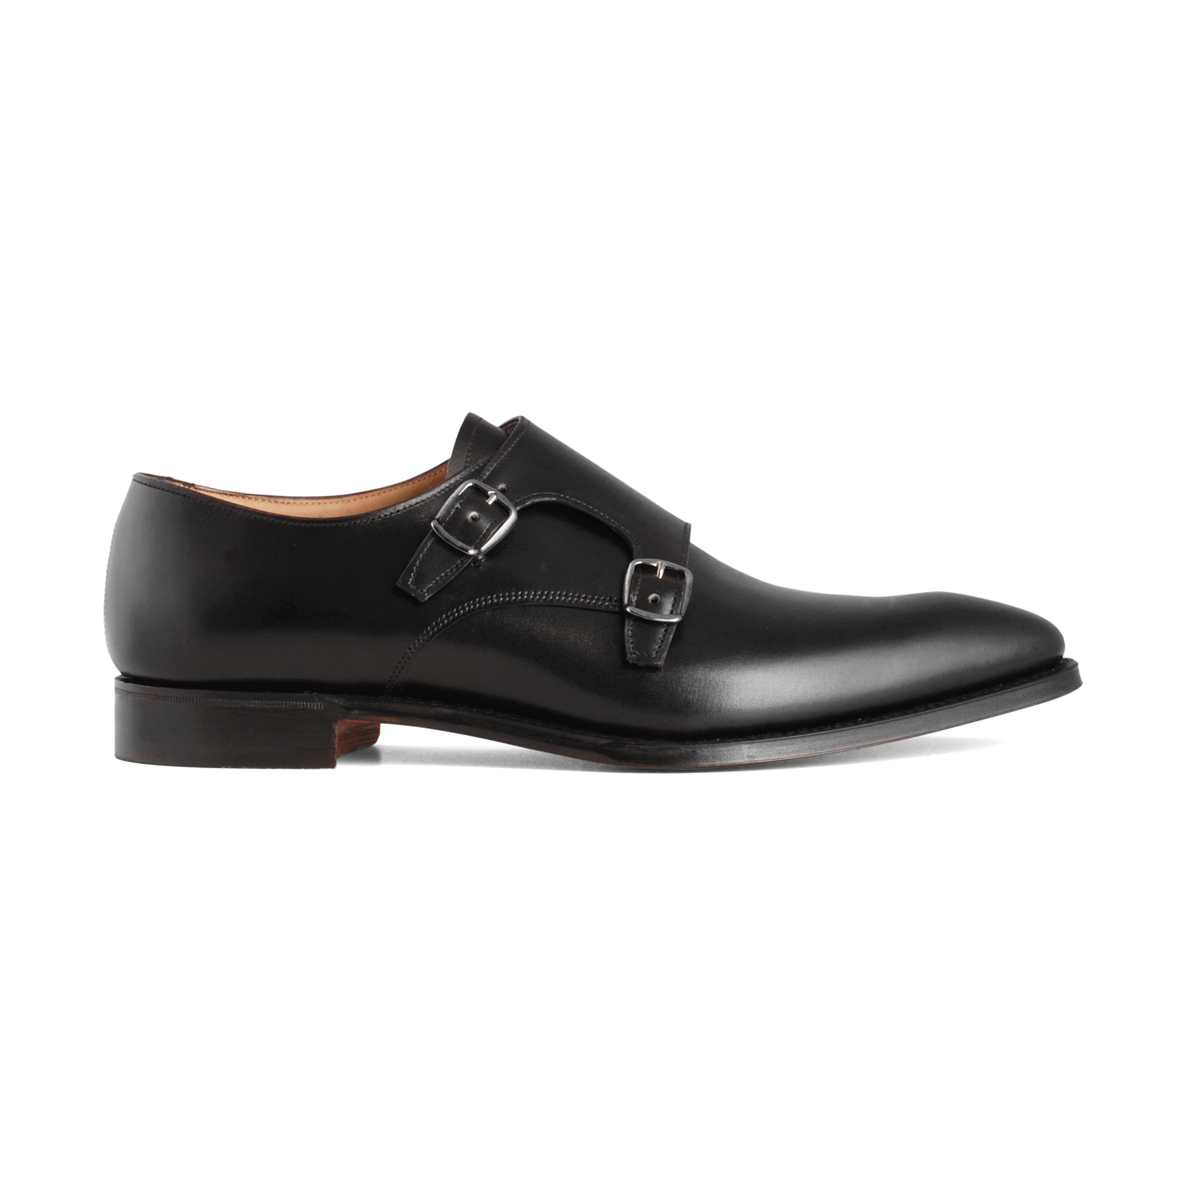 Cheaney Tiverton Black Calf shoes